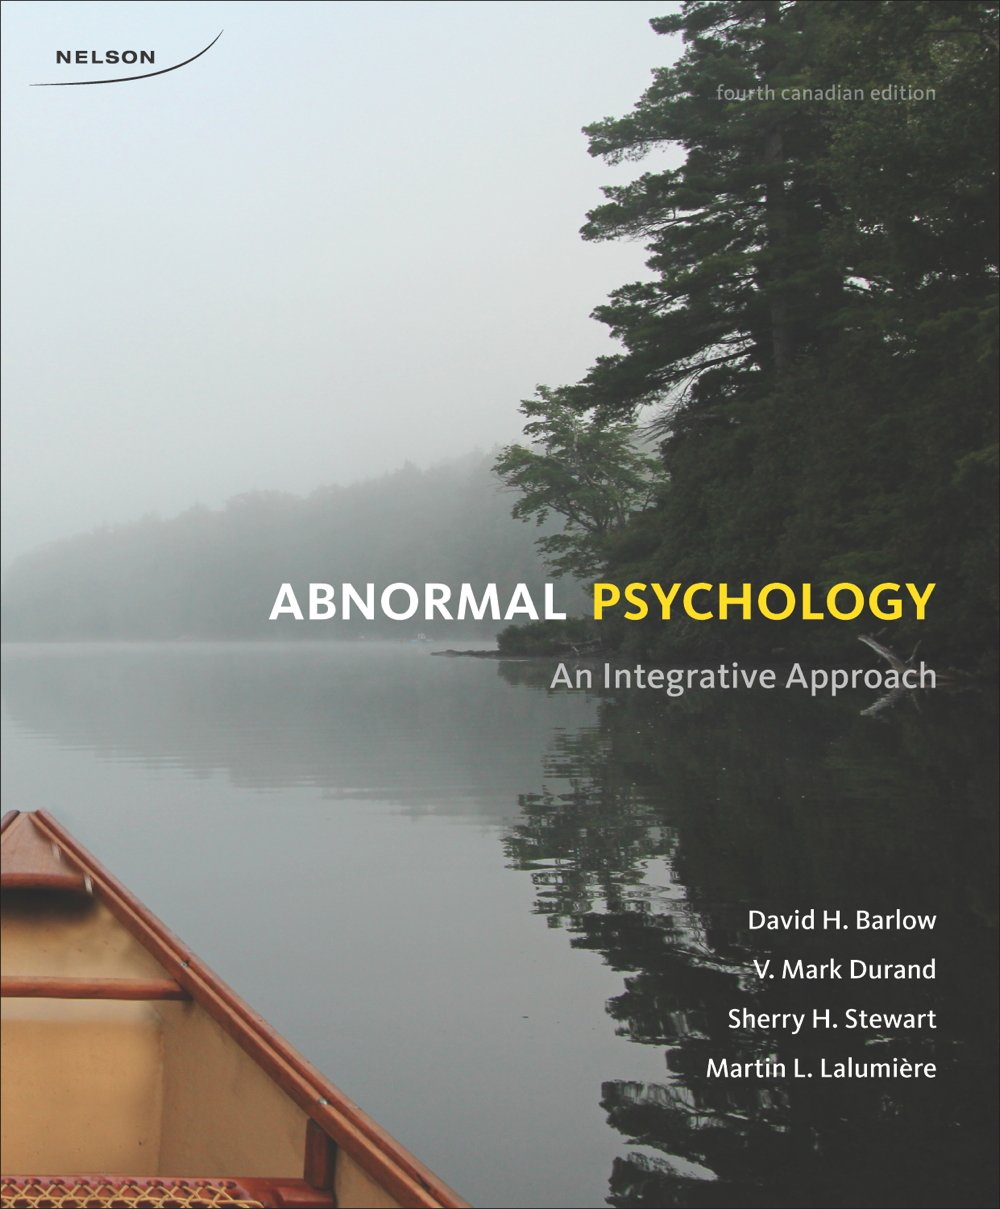 How does music relate to abnormal psychology?